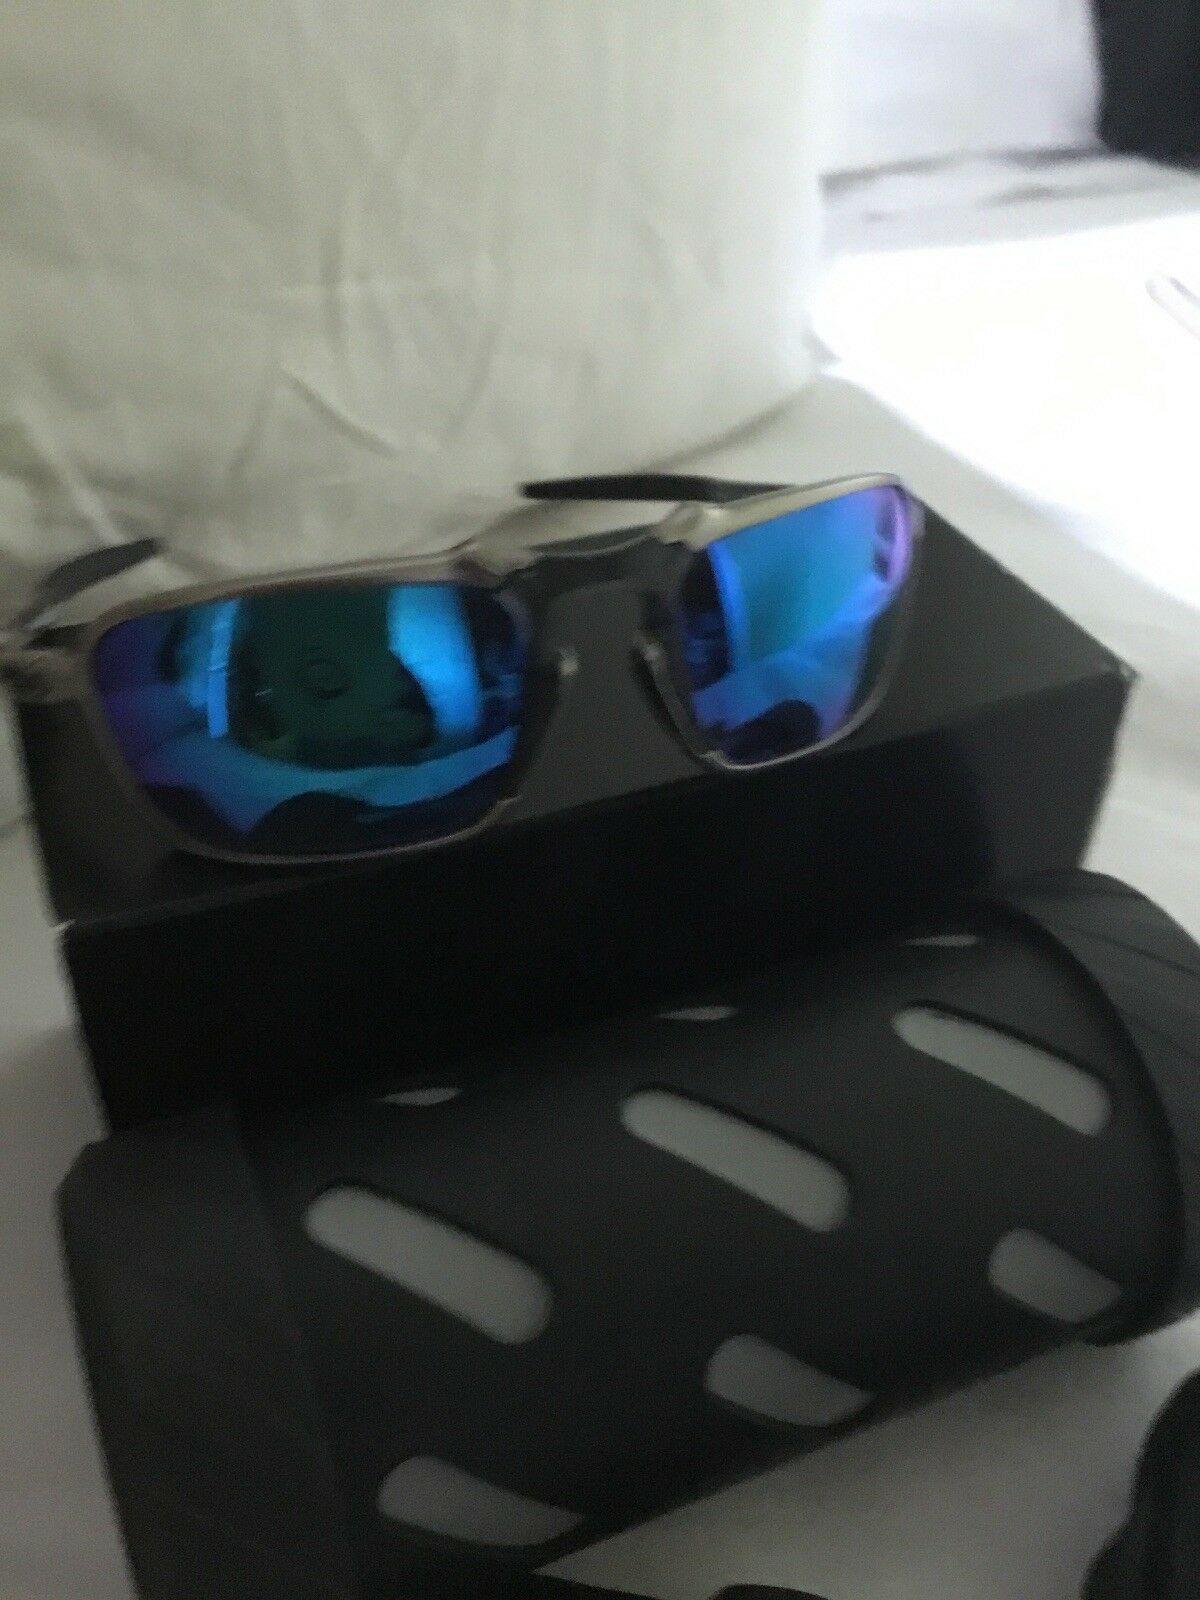 db6035477 Oakley Badman OO6020-04 Dark Plasma With Sapphire Iridium Polarized ...